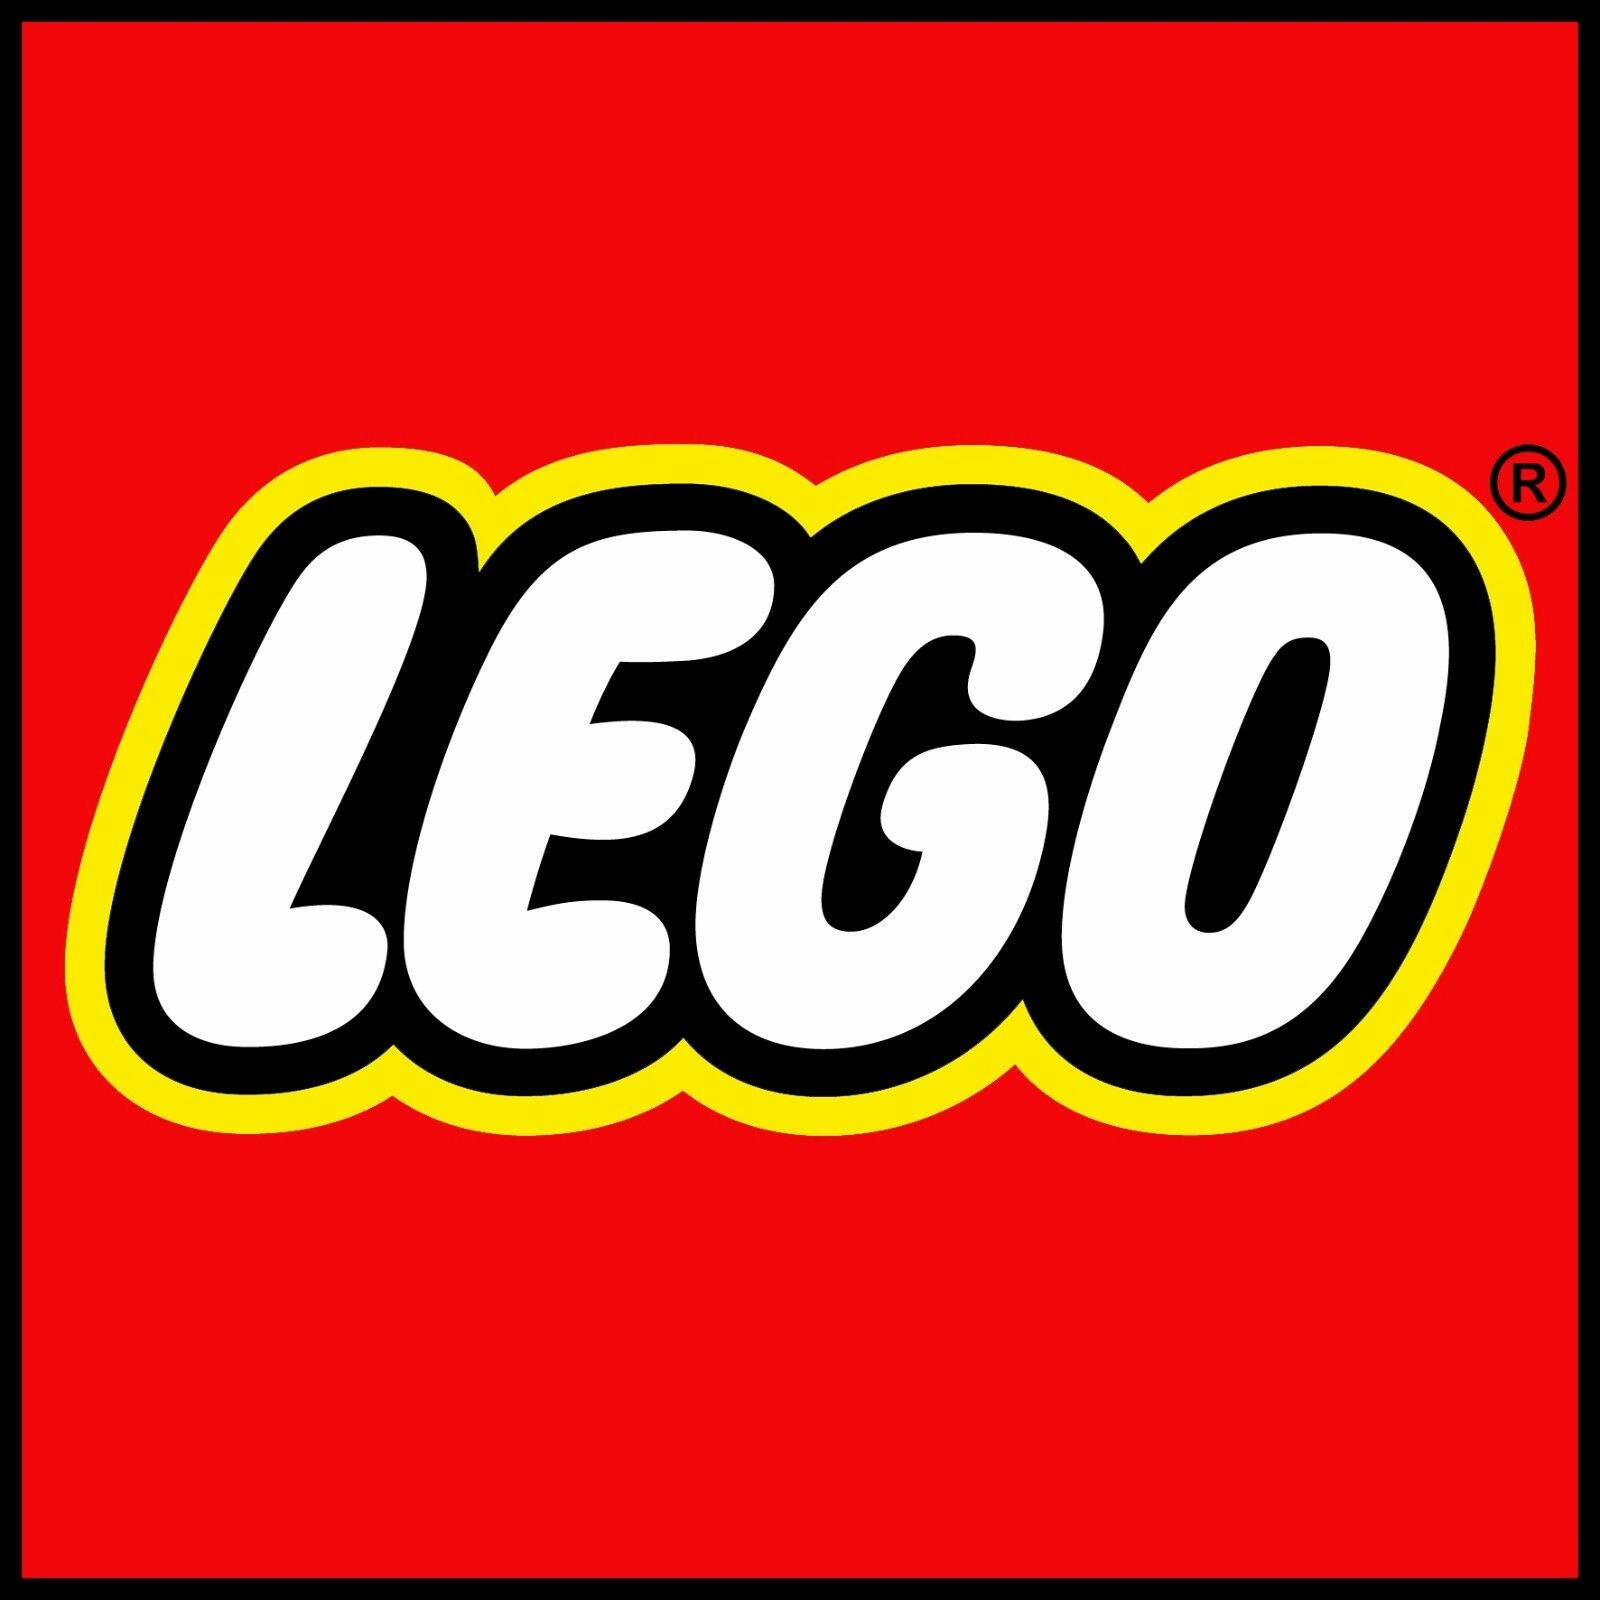 Lego Lot 2049   COMING SOON   TBU